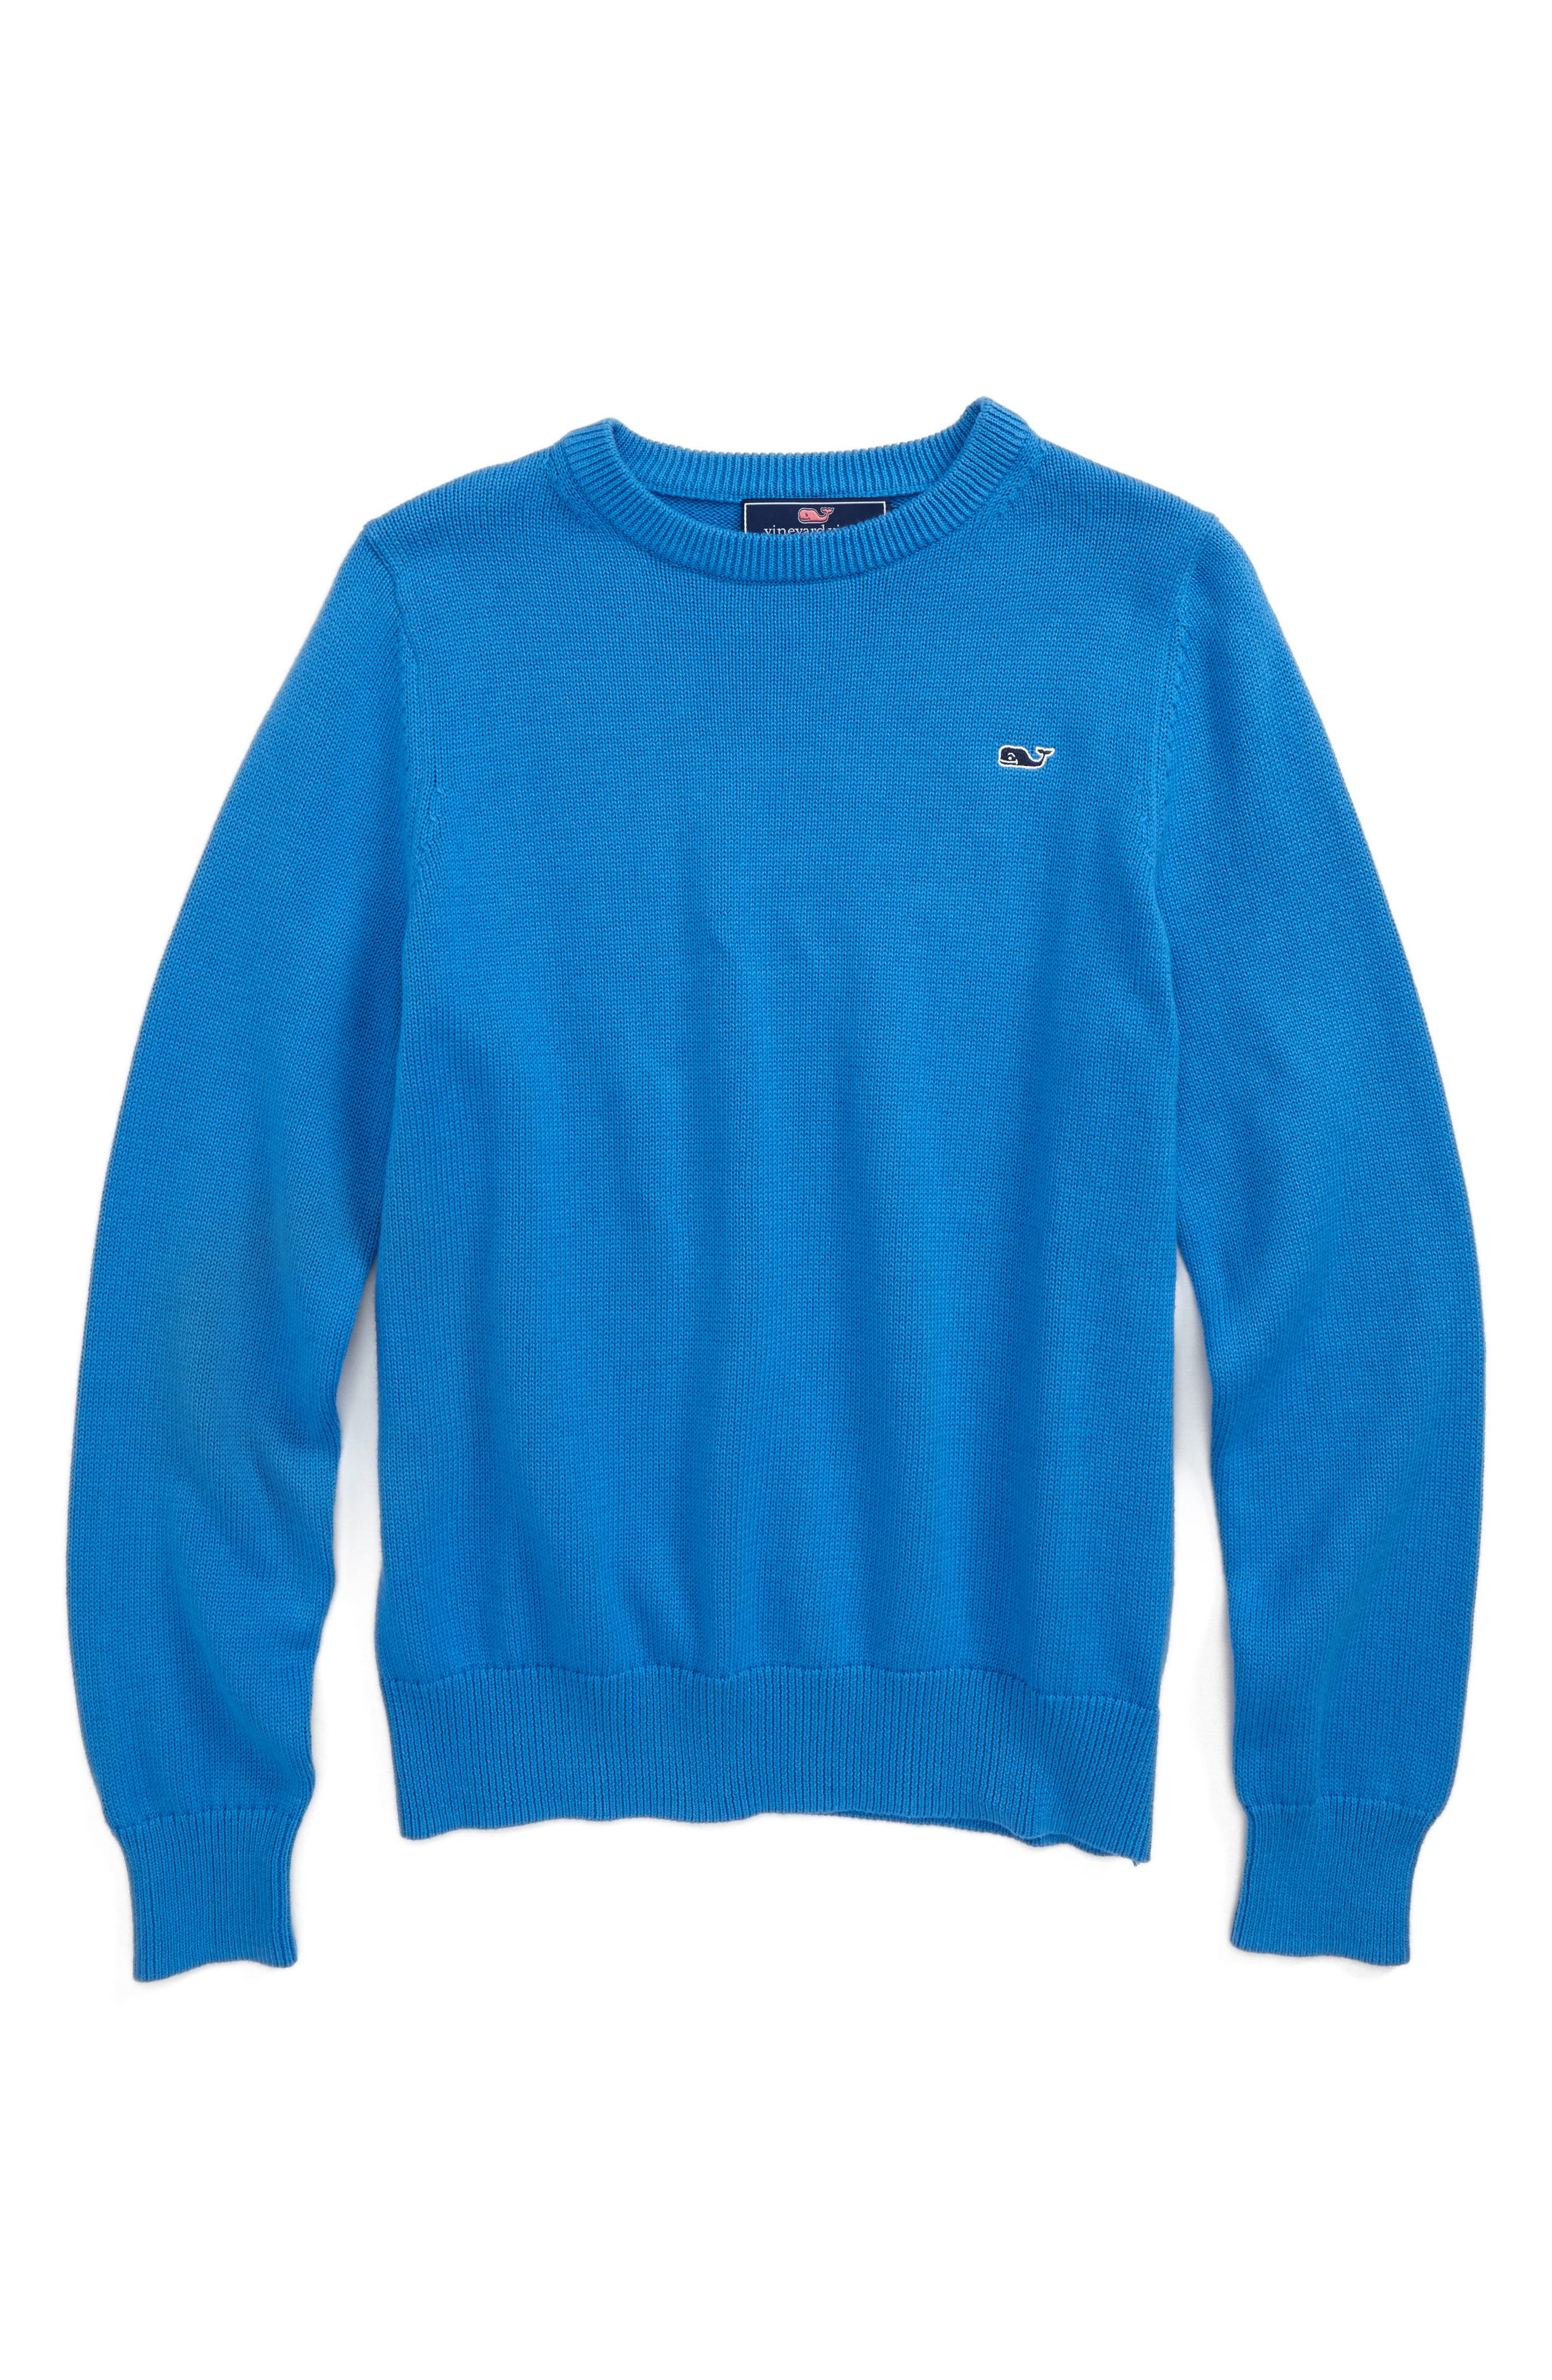 Classic Crewneck Sweater,                         Main,                         color, Hull Blue